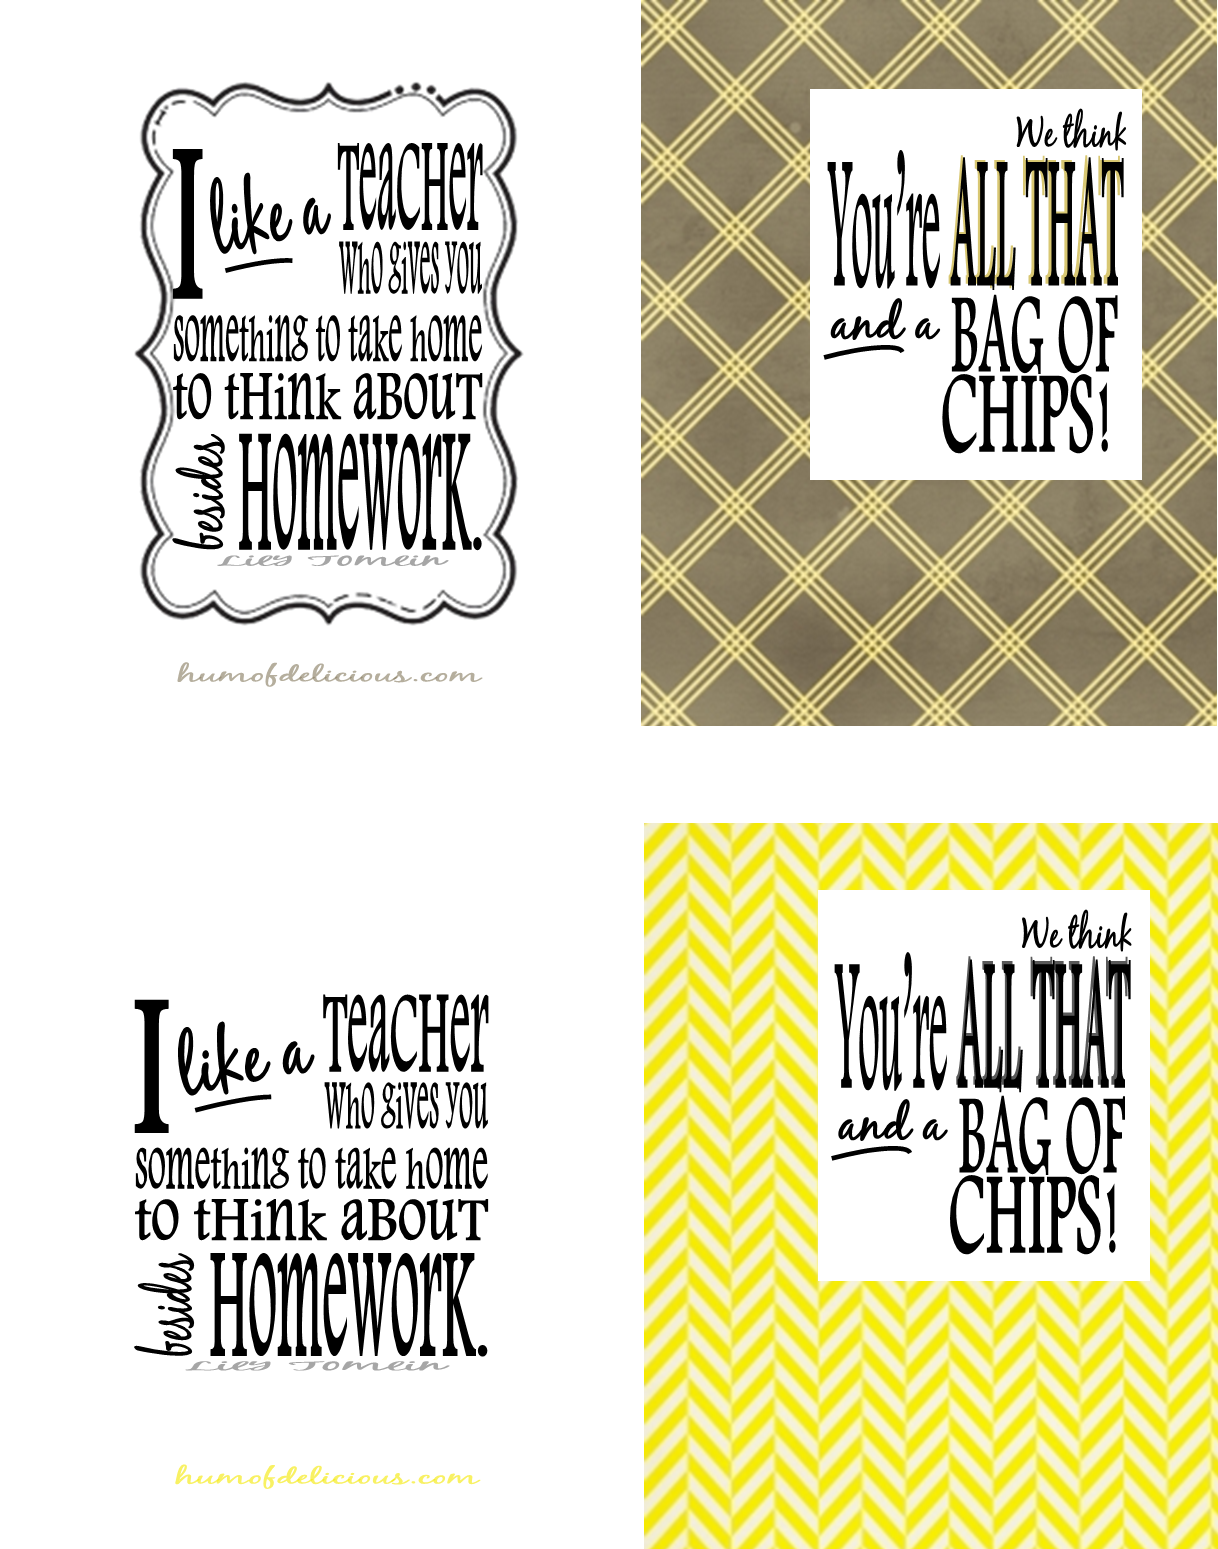 graphic about All That and a Bag of Chips Printable identify humofdelicious printables: All That and a Bag of Chips